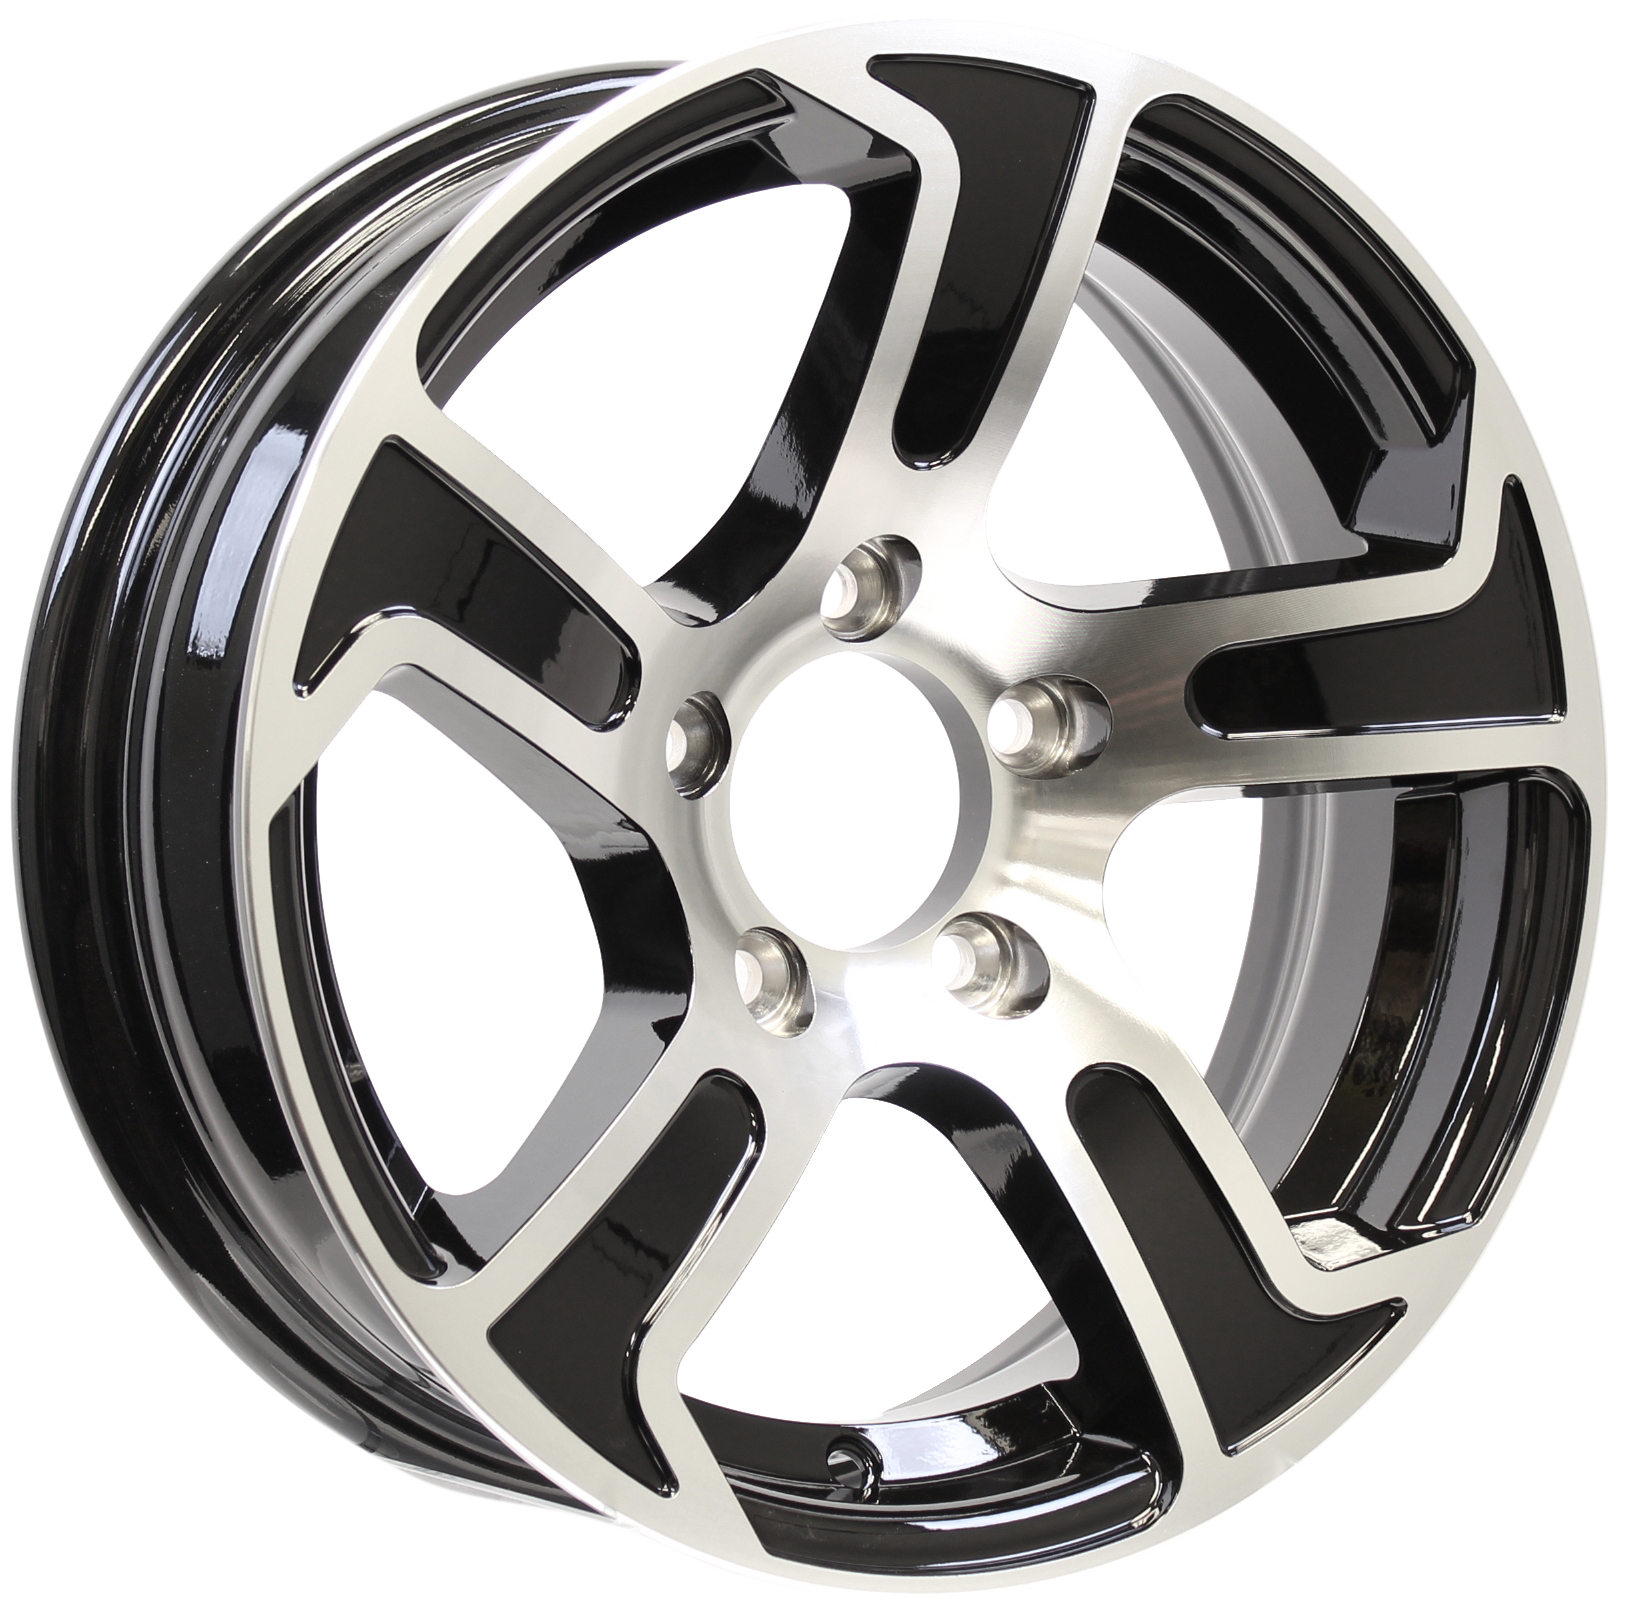 Summit- 15x5 5-4.5 Black Aluminum Trailer Wheel Image